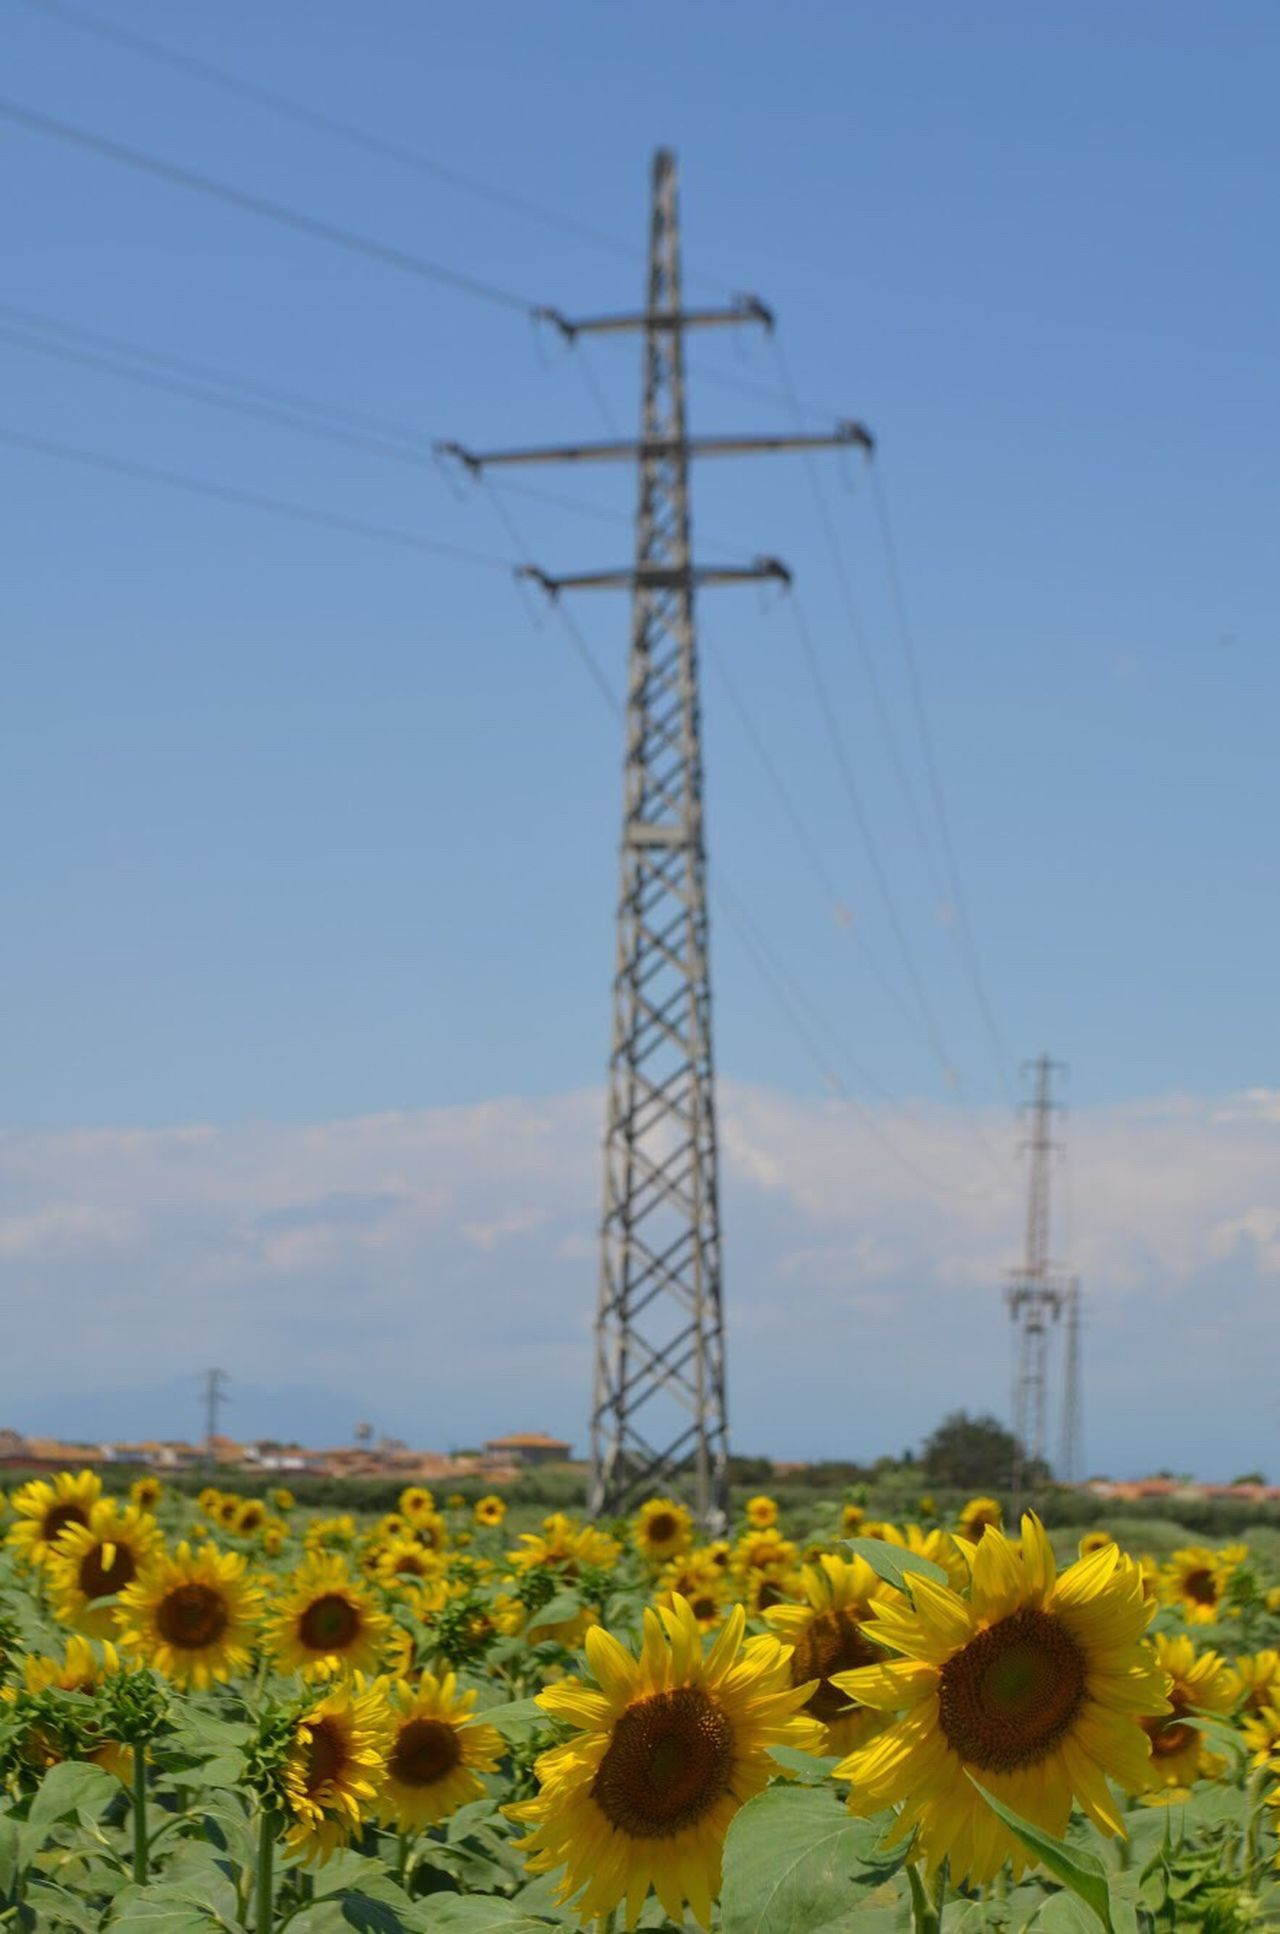 Flower Cable Sky Electricity Pylon No People Growth Electricity  Connection Plant Nature Yellow Day Technology Outdoors Agriculture Alternative Energy Low Angle View Fragility Freshness Beauty In Nature Sunflower Landscape_photography Landscape_Collection Eye4photography  EyeEm Gallery